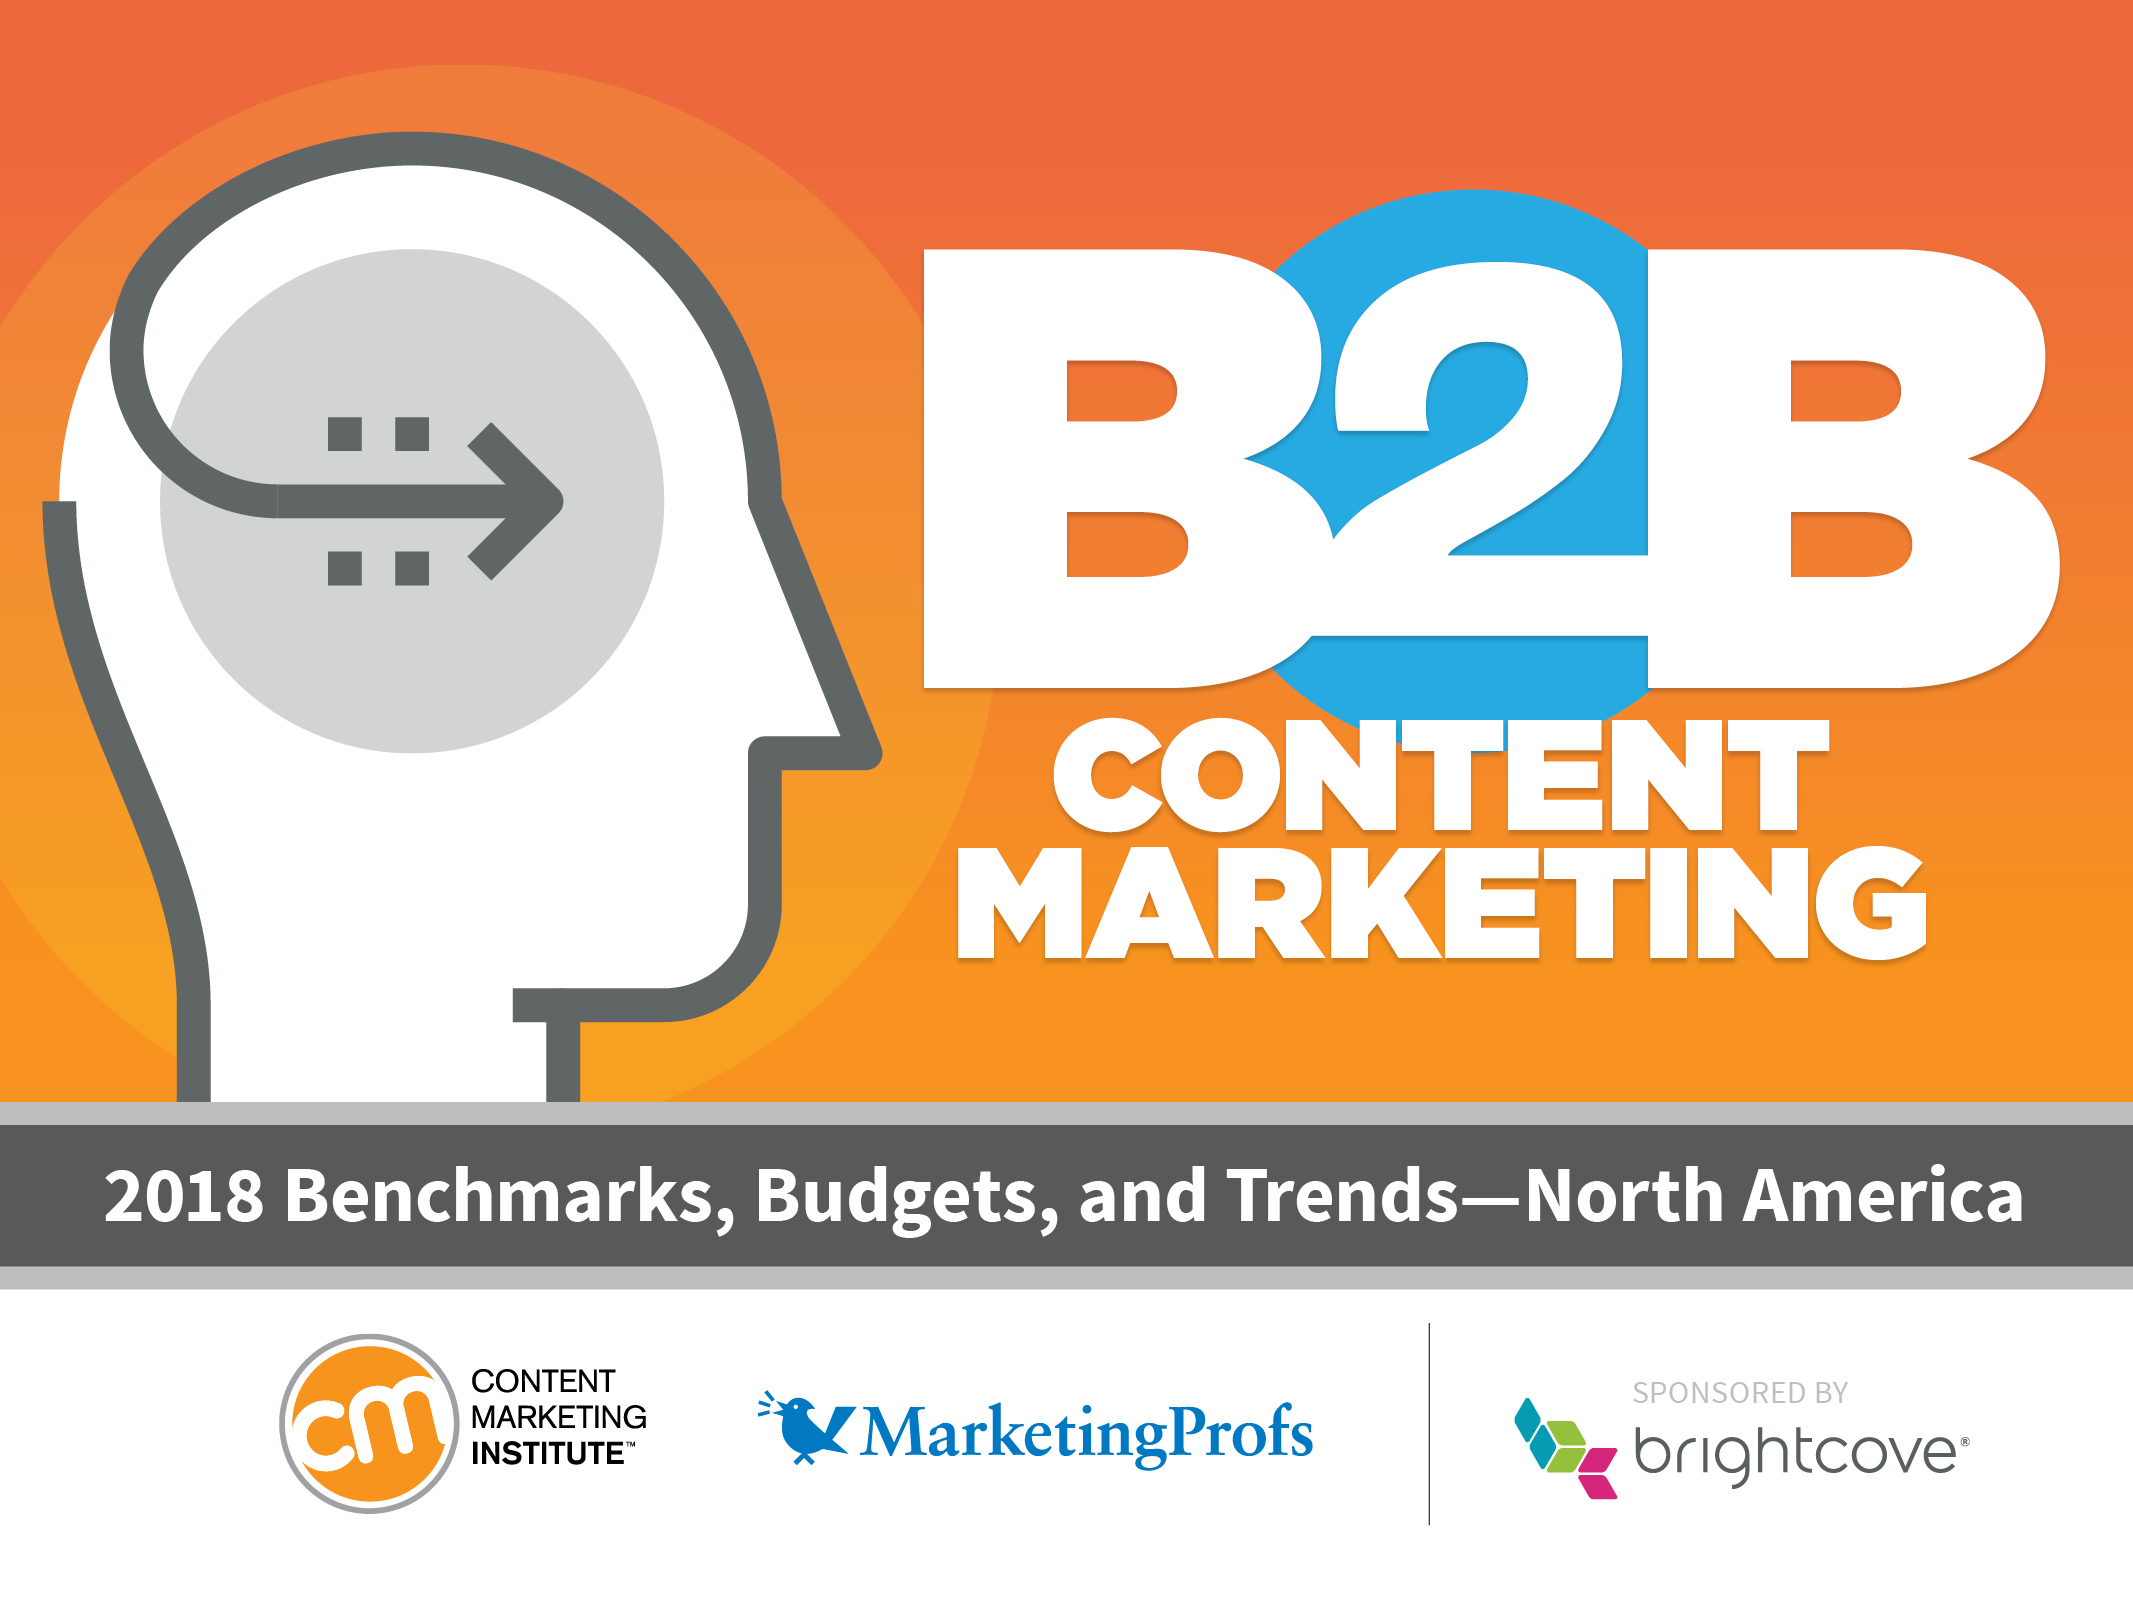 B2B Content Marketing: 2018 Benchmarks, Budgets And Trends U2014 North America